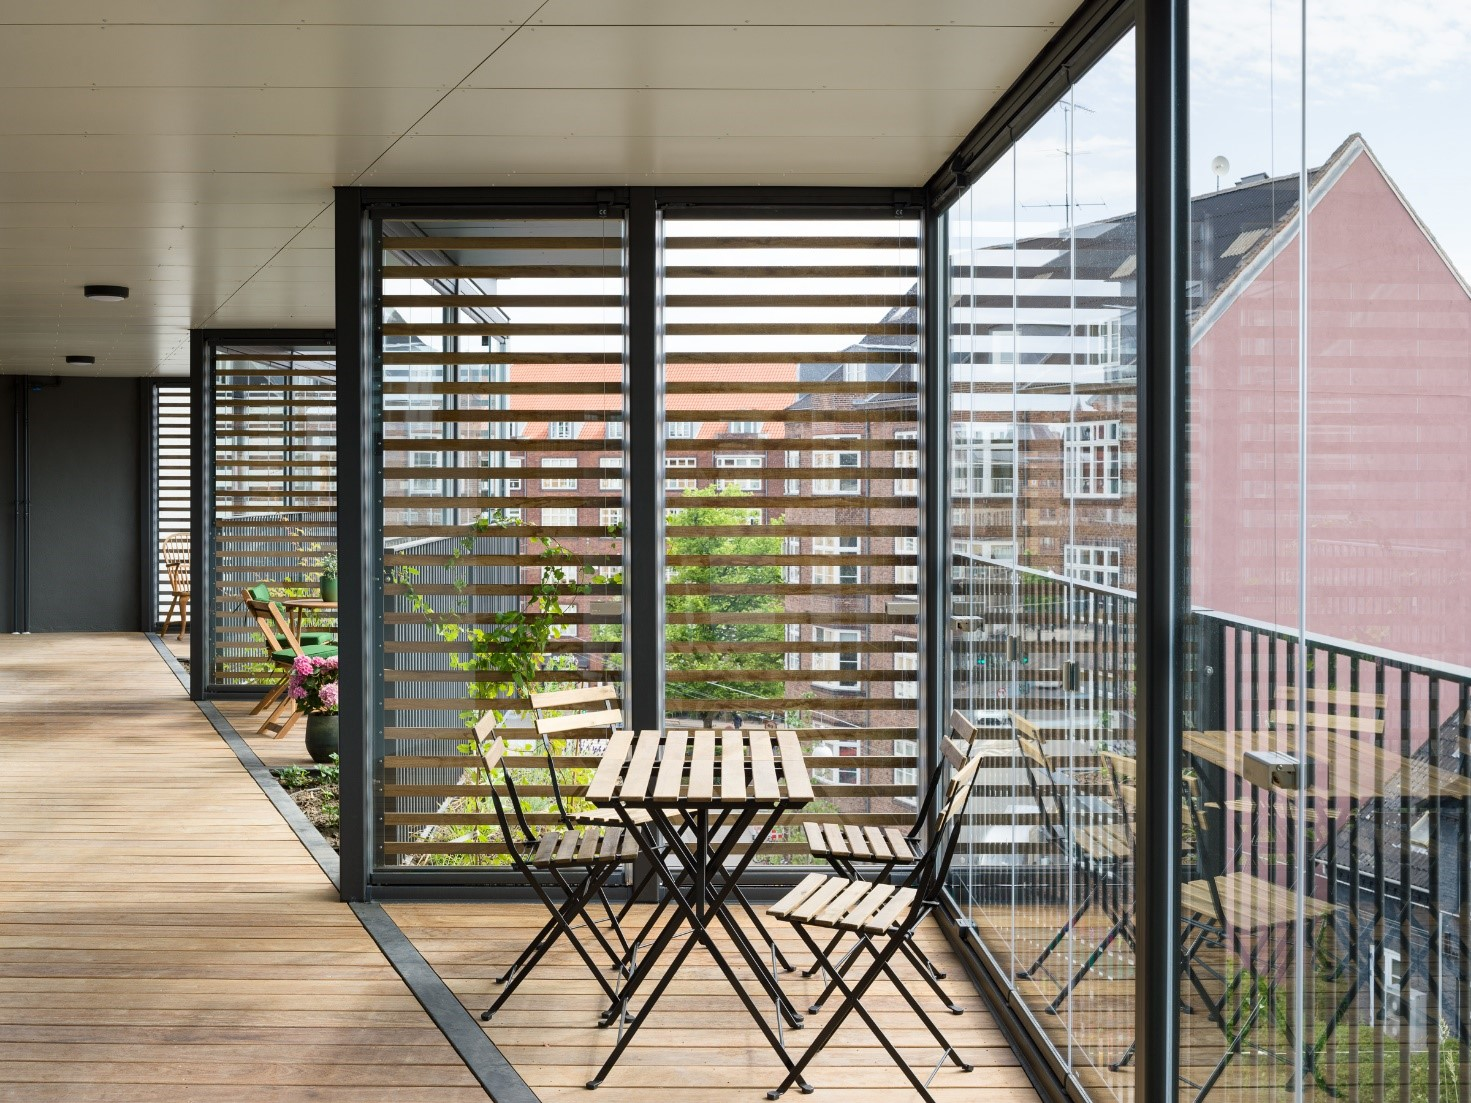 The balcony glazing gives the residents a protected passage to the apartments which is still semiprivate.